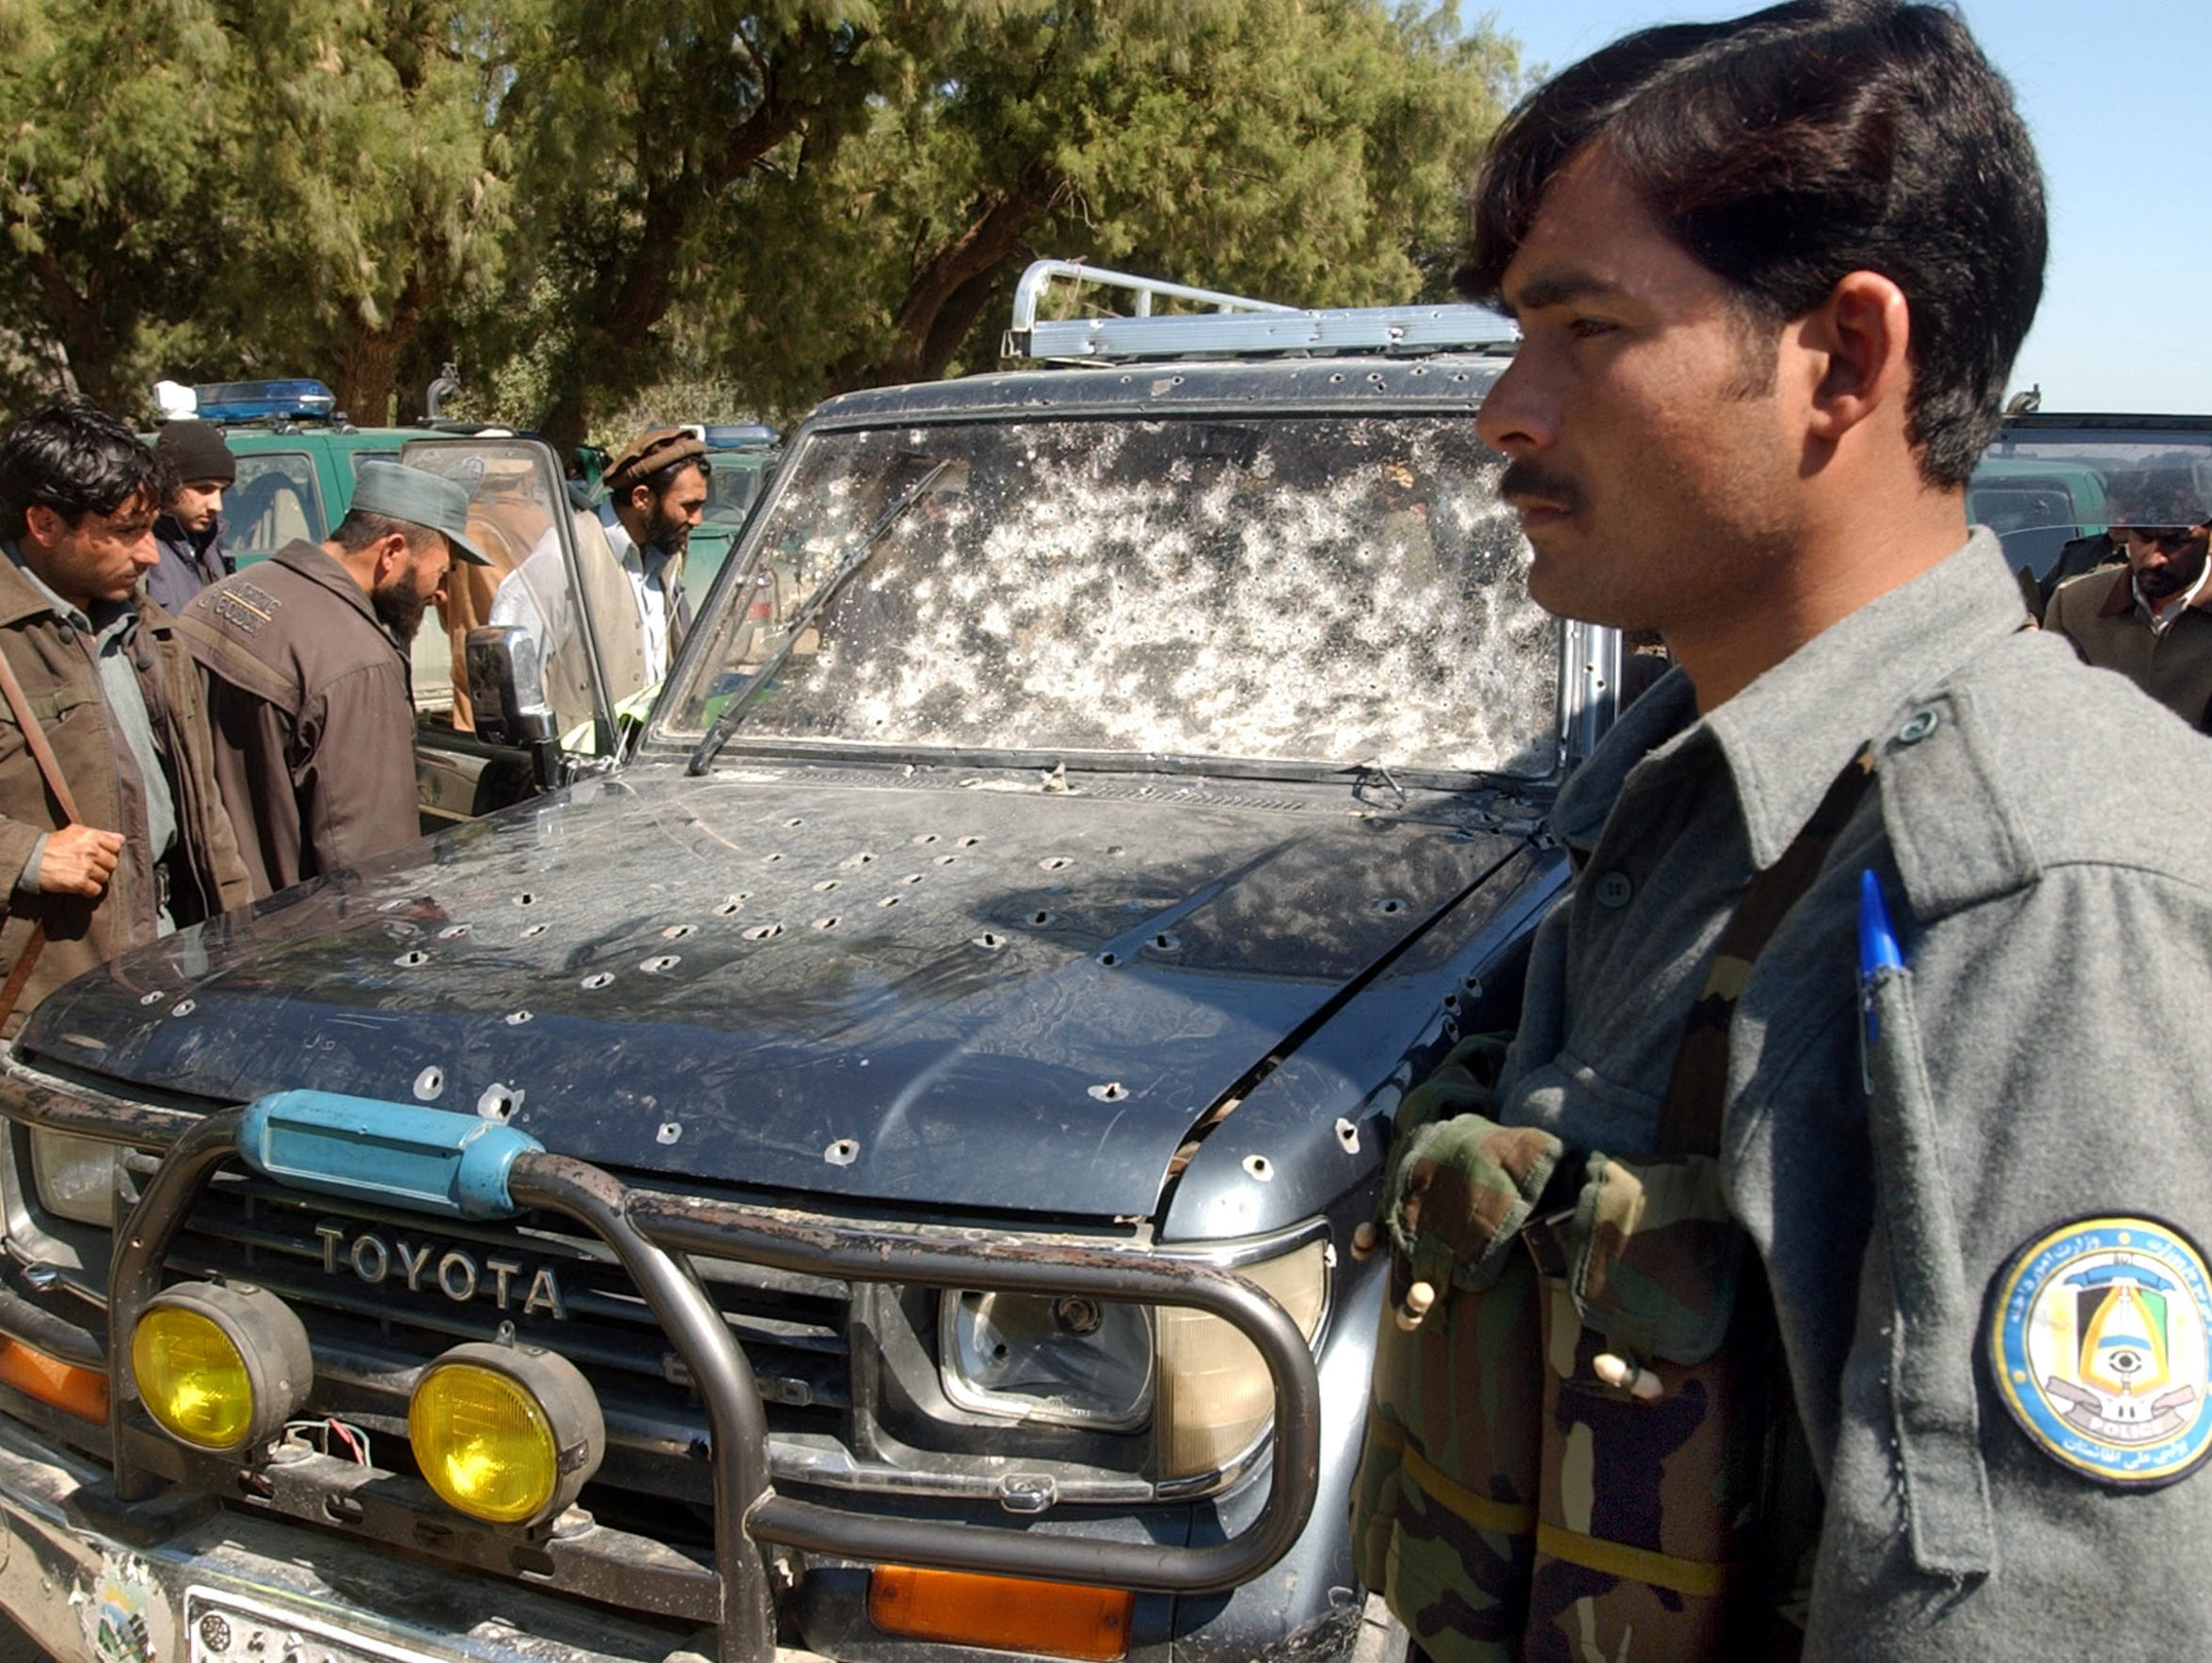 Afghan police inspect the Toyota Prado that targeted